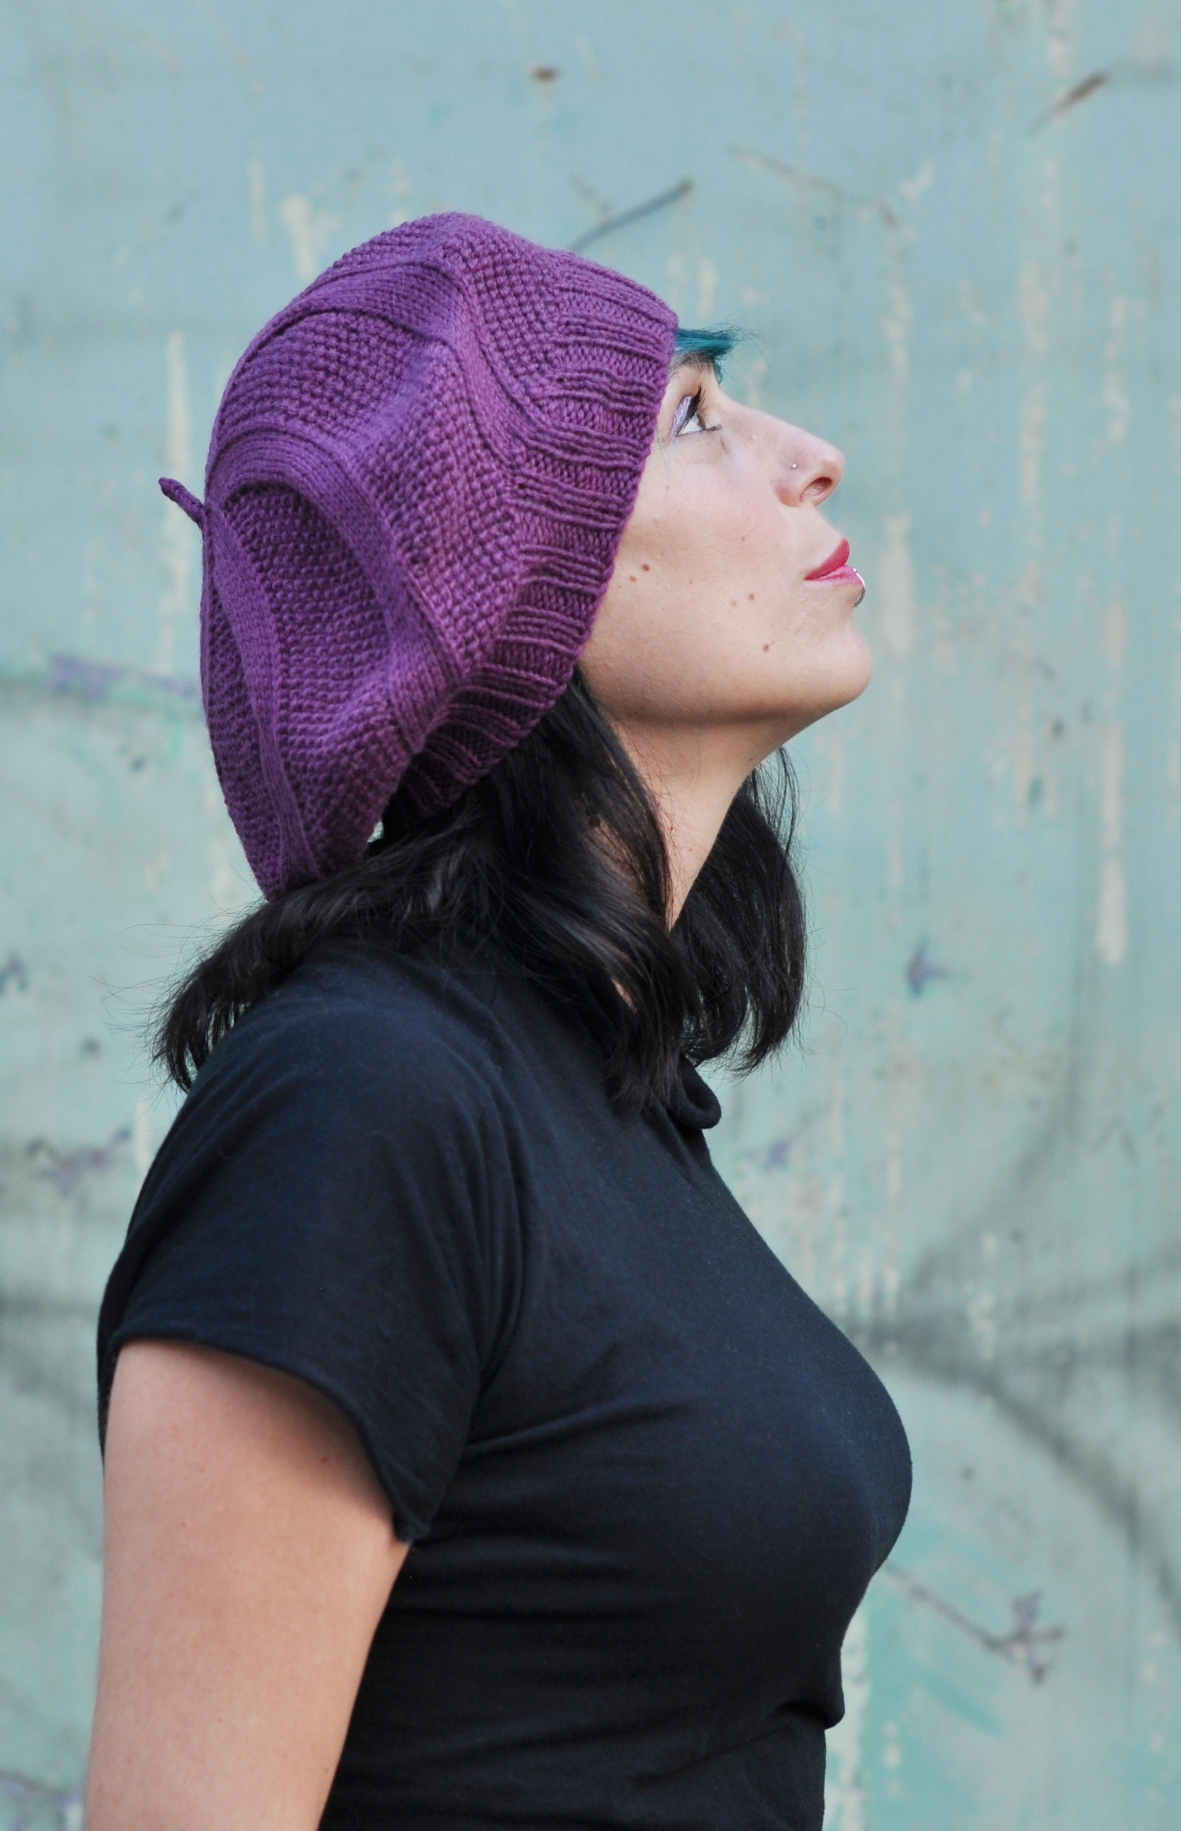 Coldharbour Twist beret knitting pattern